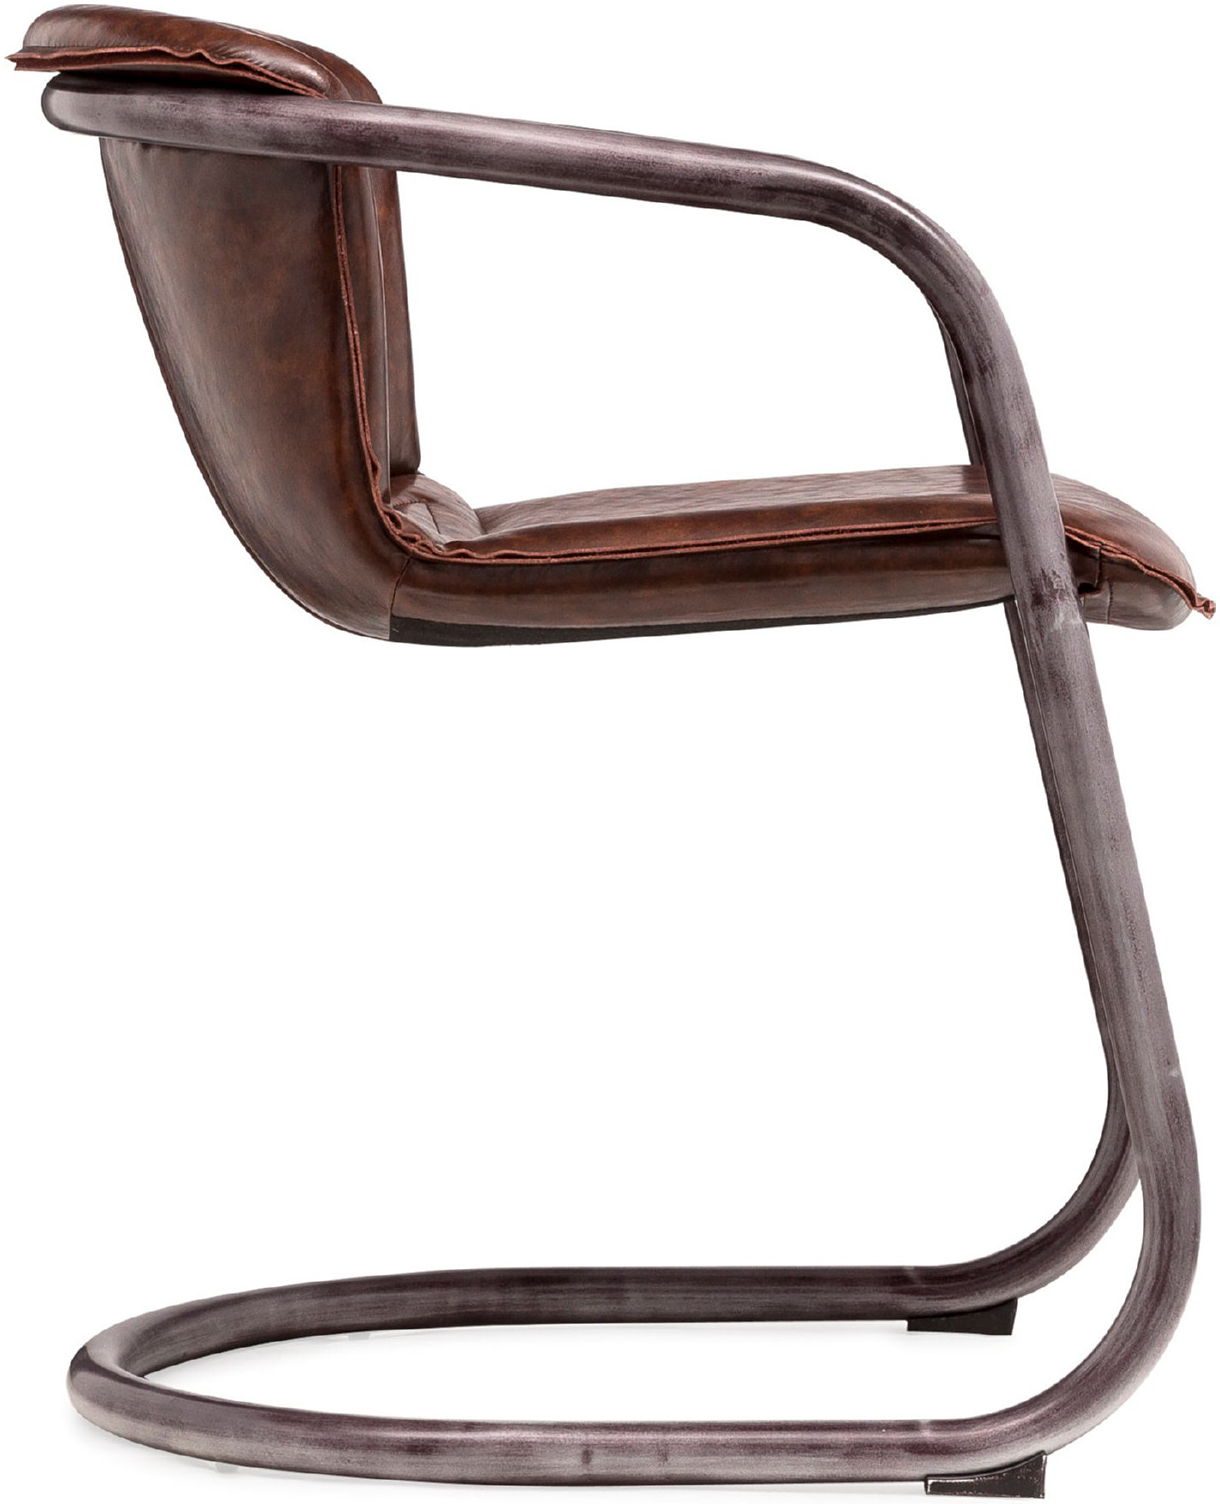 the gear dining chair in vintage brown